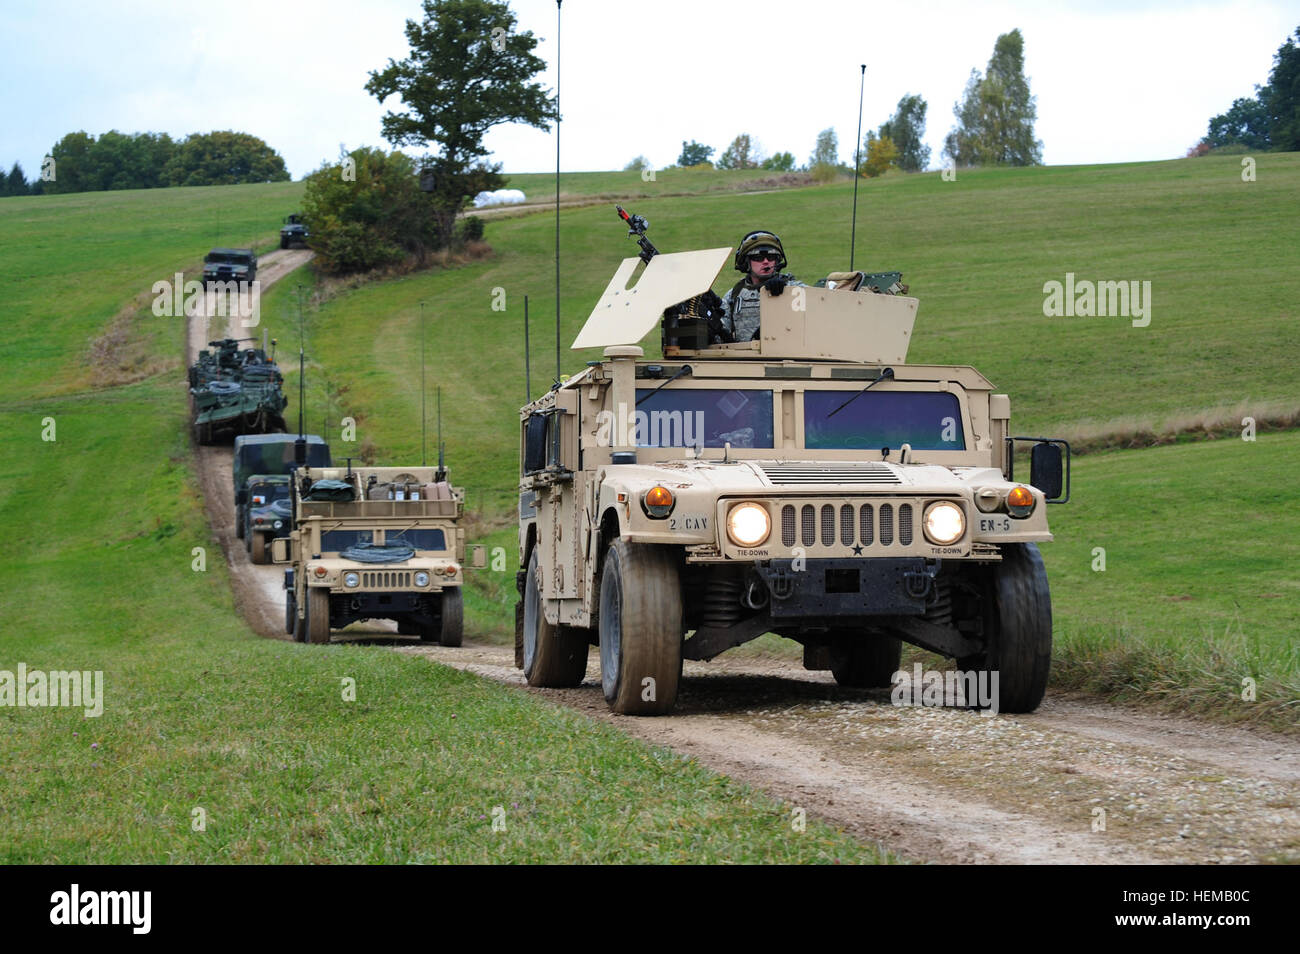 U.S. Army Europe's 4th Squadron, 2nd Cavalry Regiment, move through the German country side towards the village - Stock Image